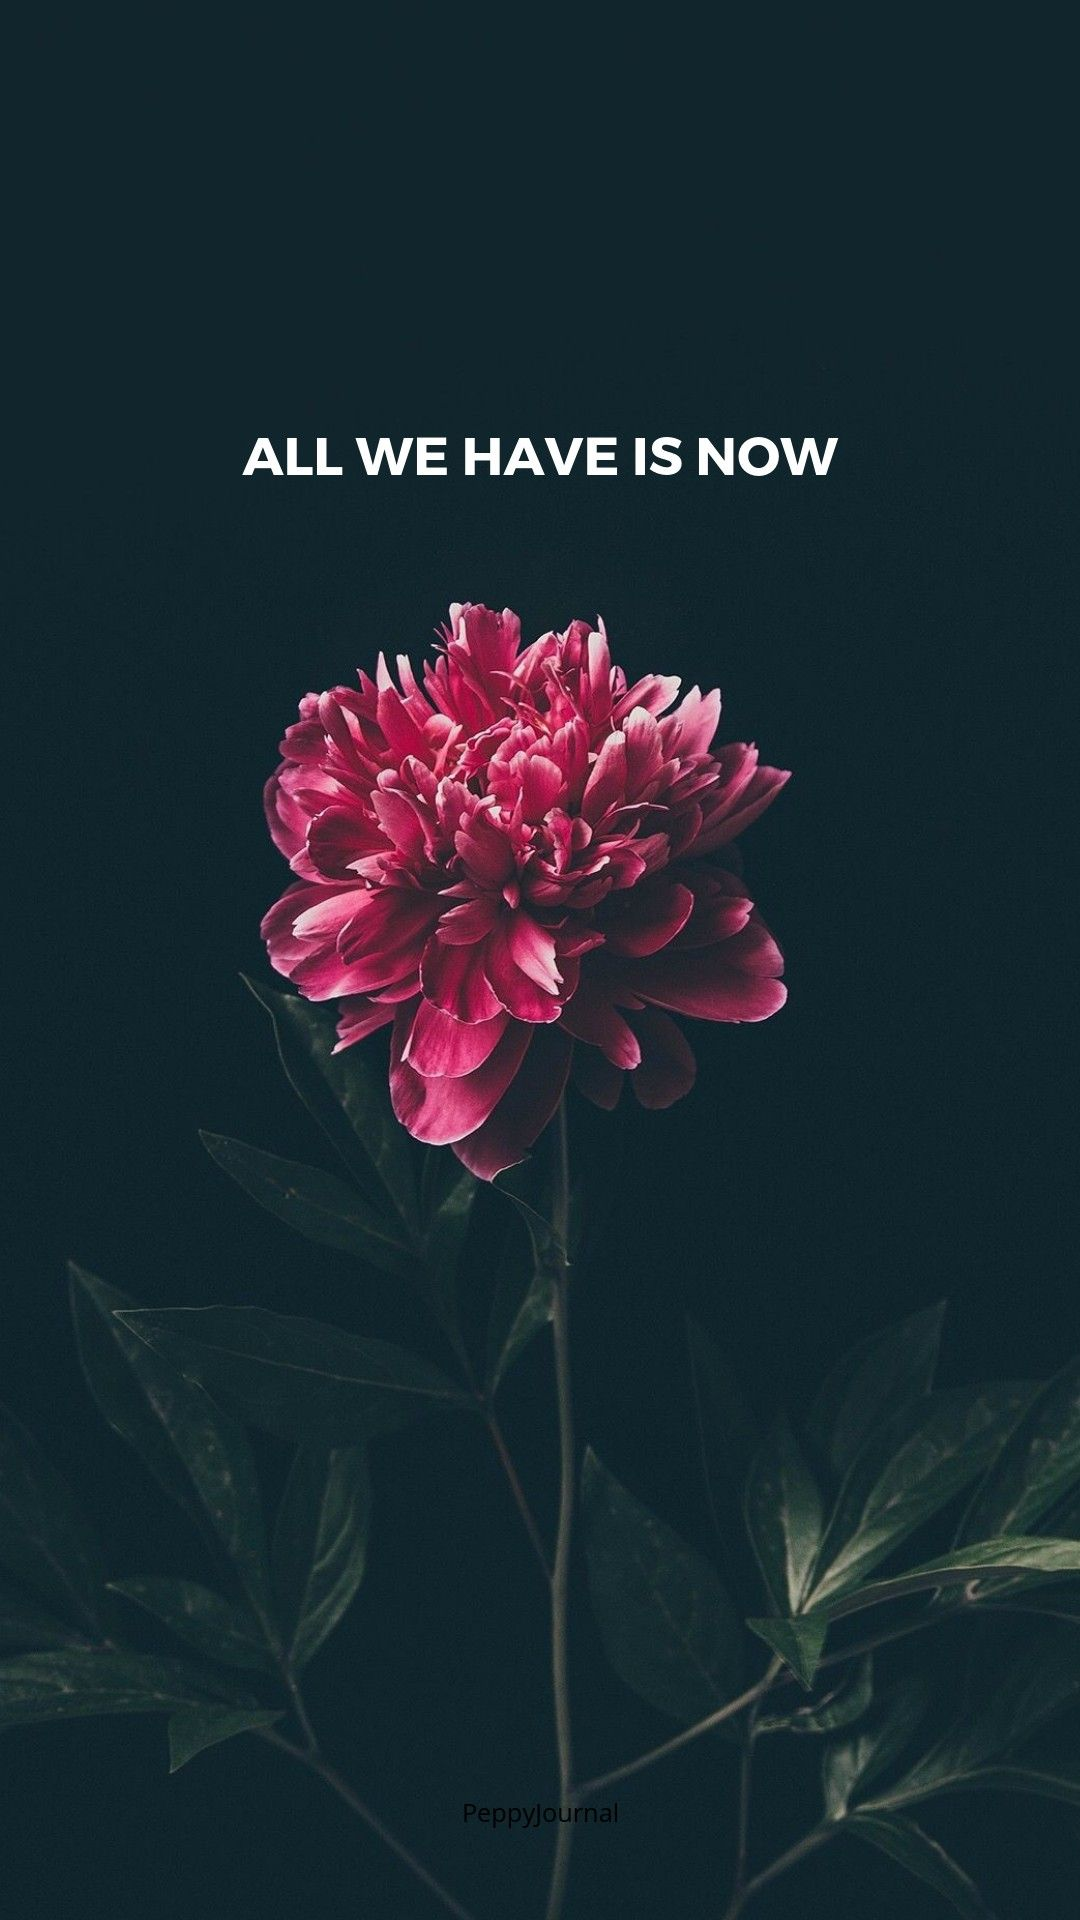 1080x1920 quotes   Inpirational Quotes   Flower wallpaper, Tumblr ...